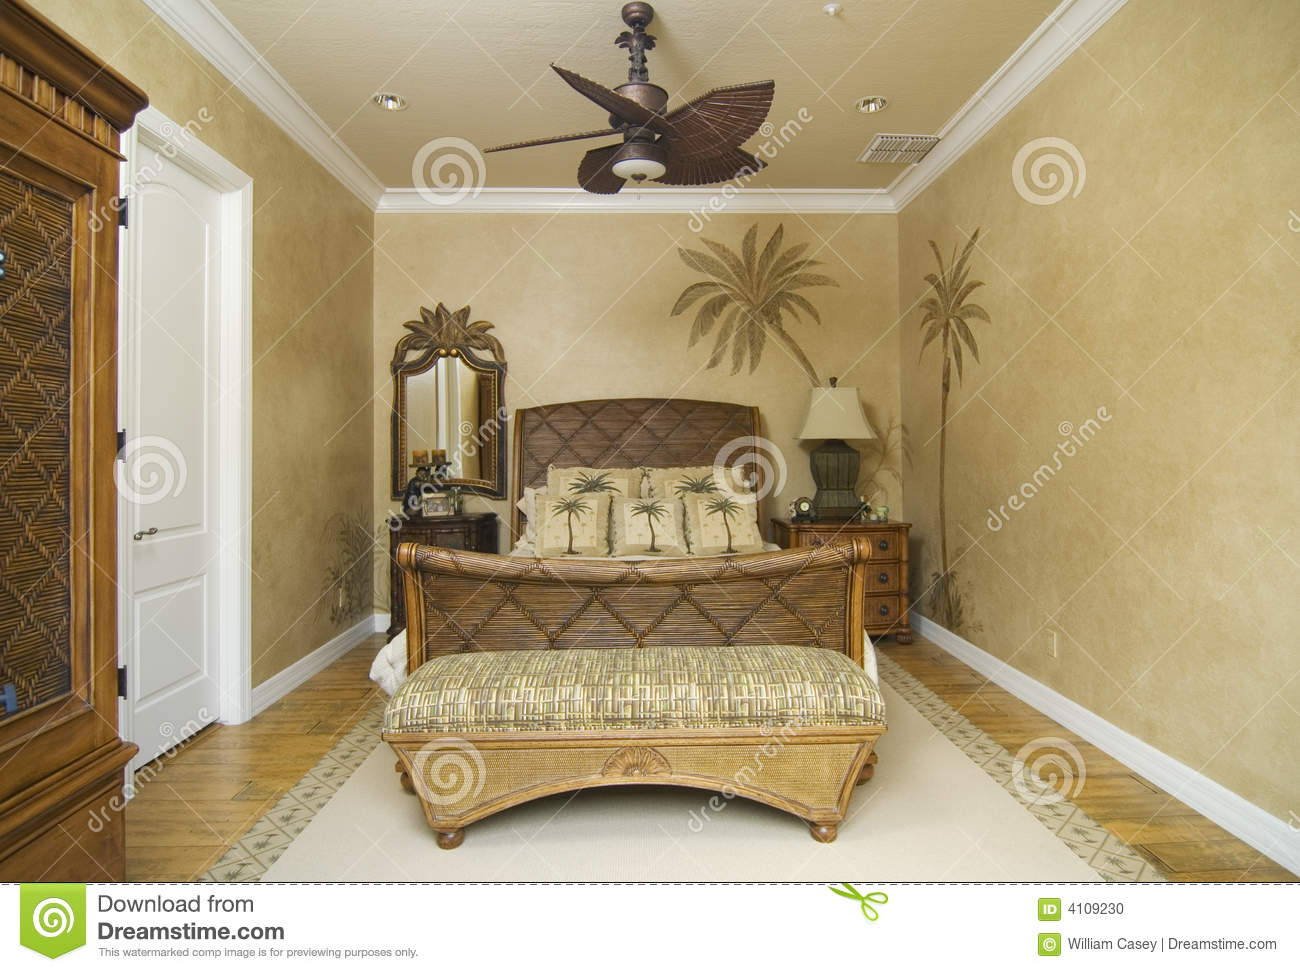 Chambre Tropicale Chambre à Coucher En Osier Tropicale Photo Stock Image